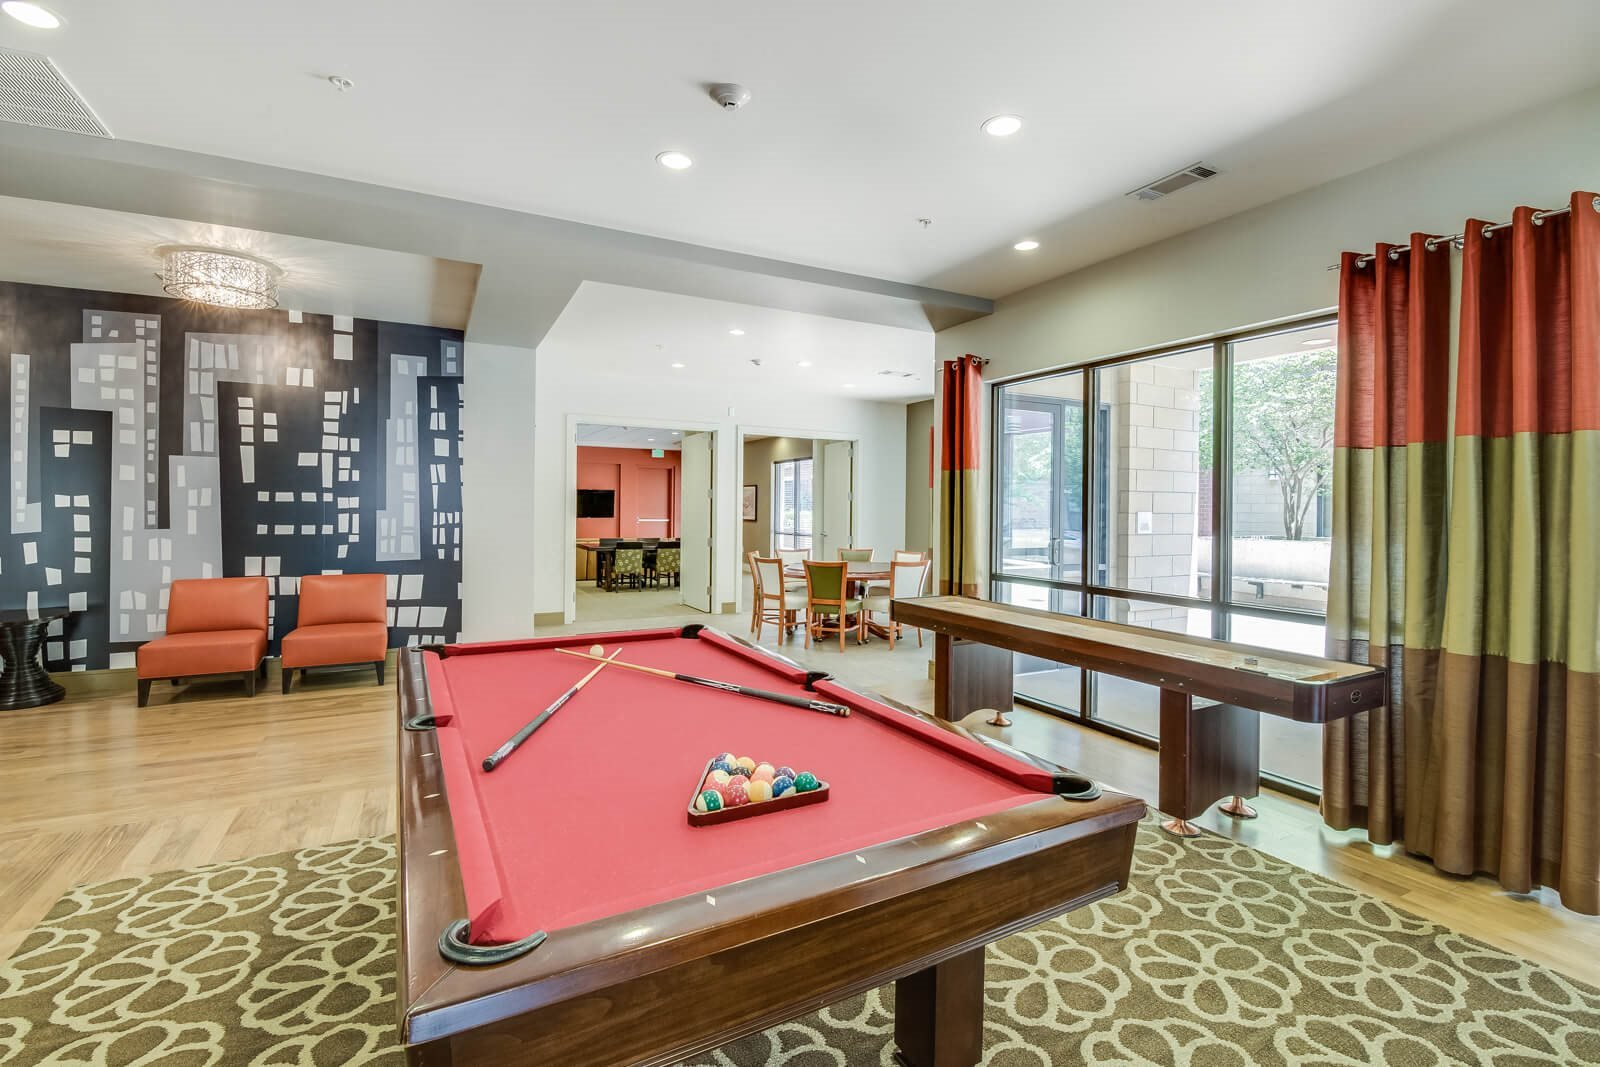 Game Room with Billiards Table at The Manhattan Tower and Lofts, Denver, CO